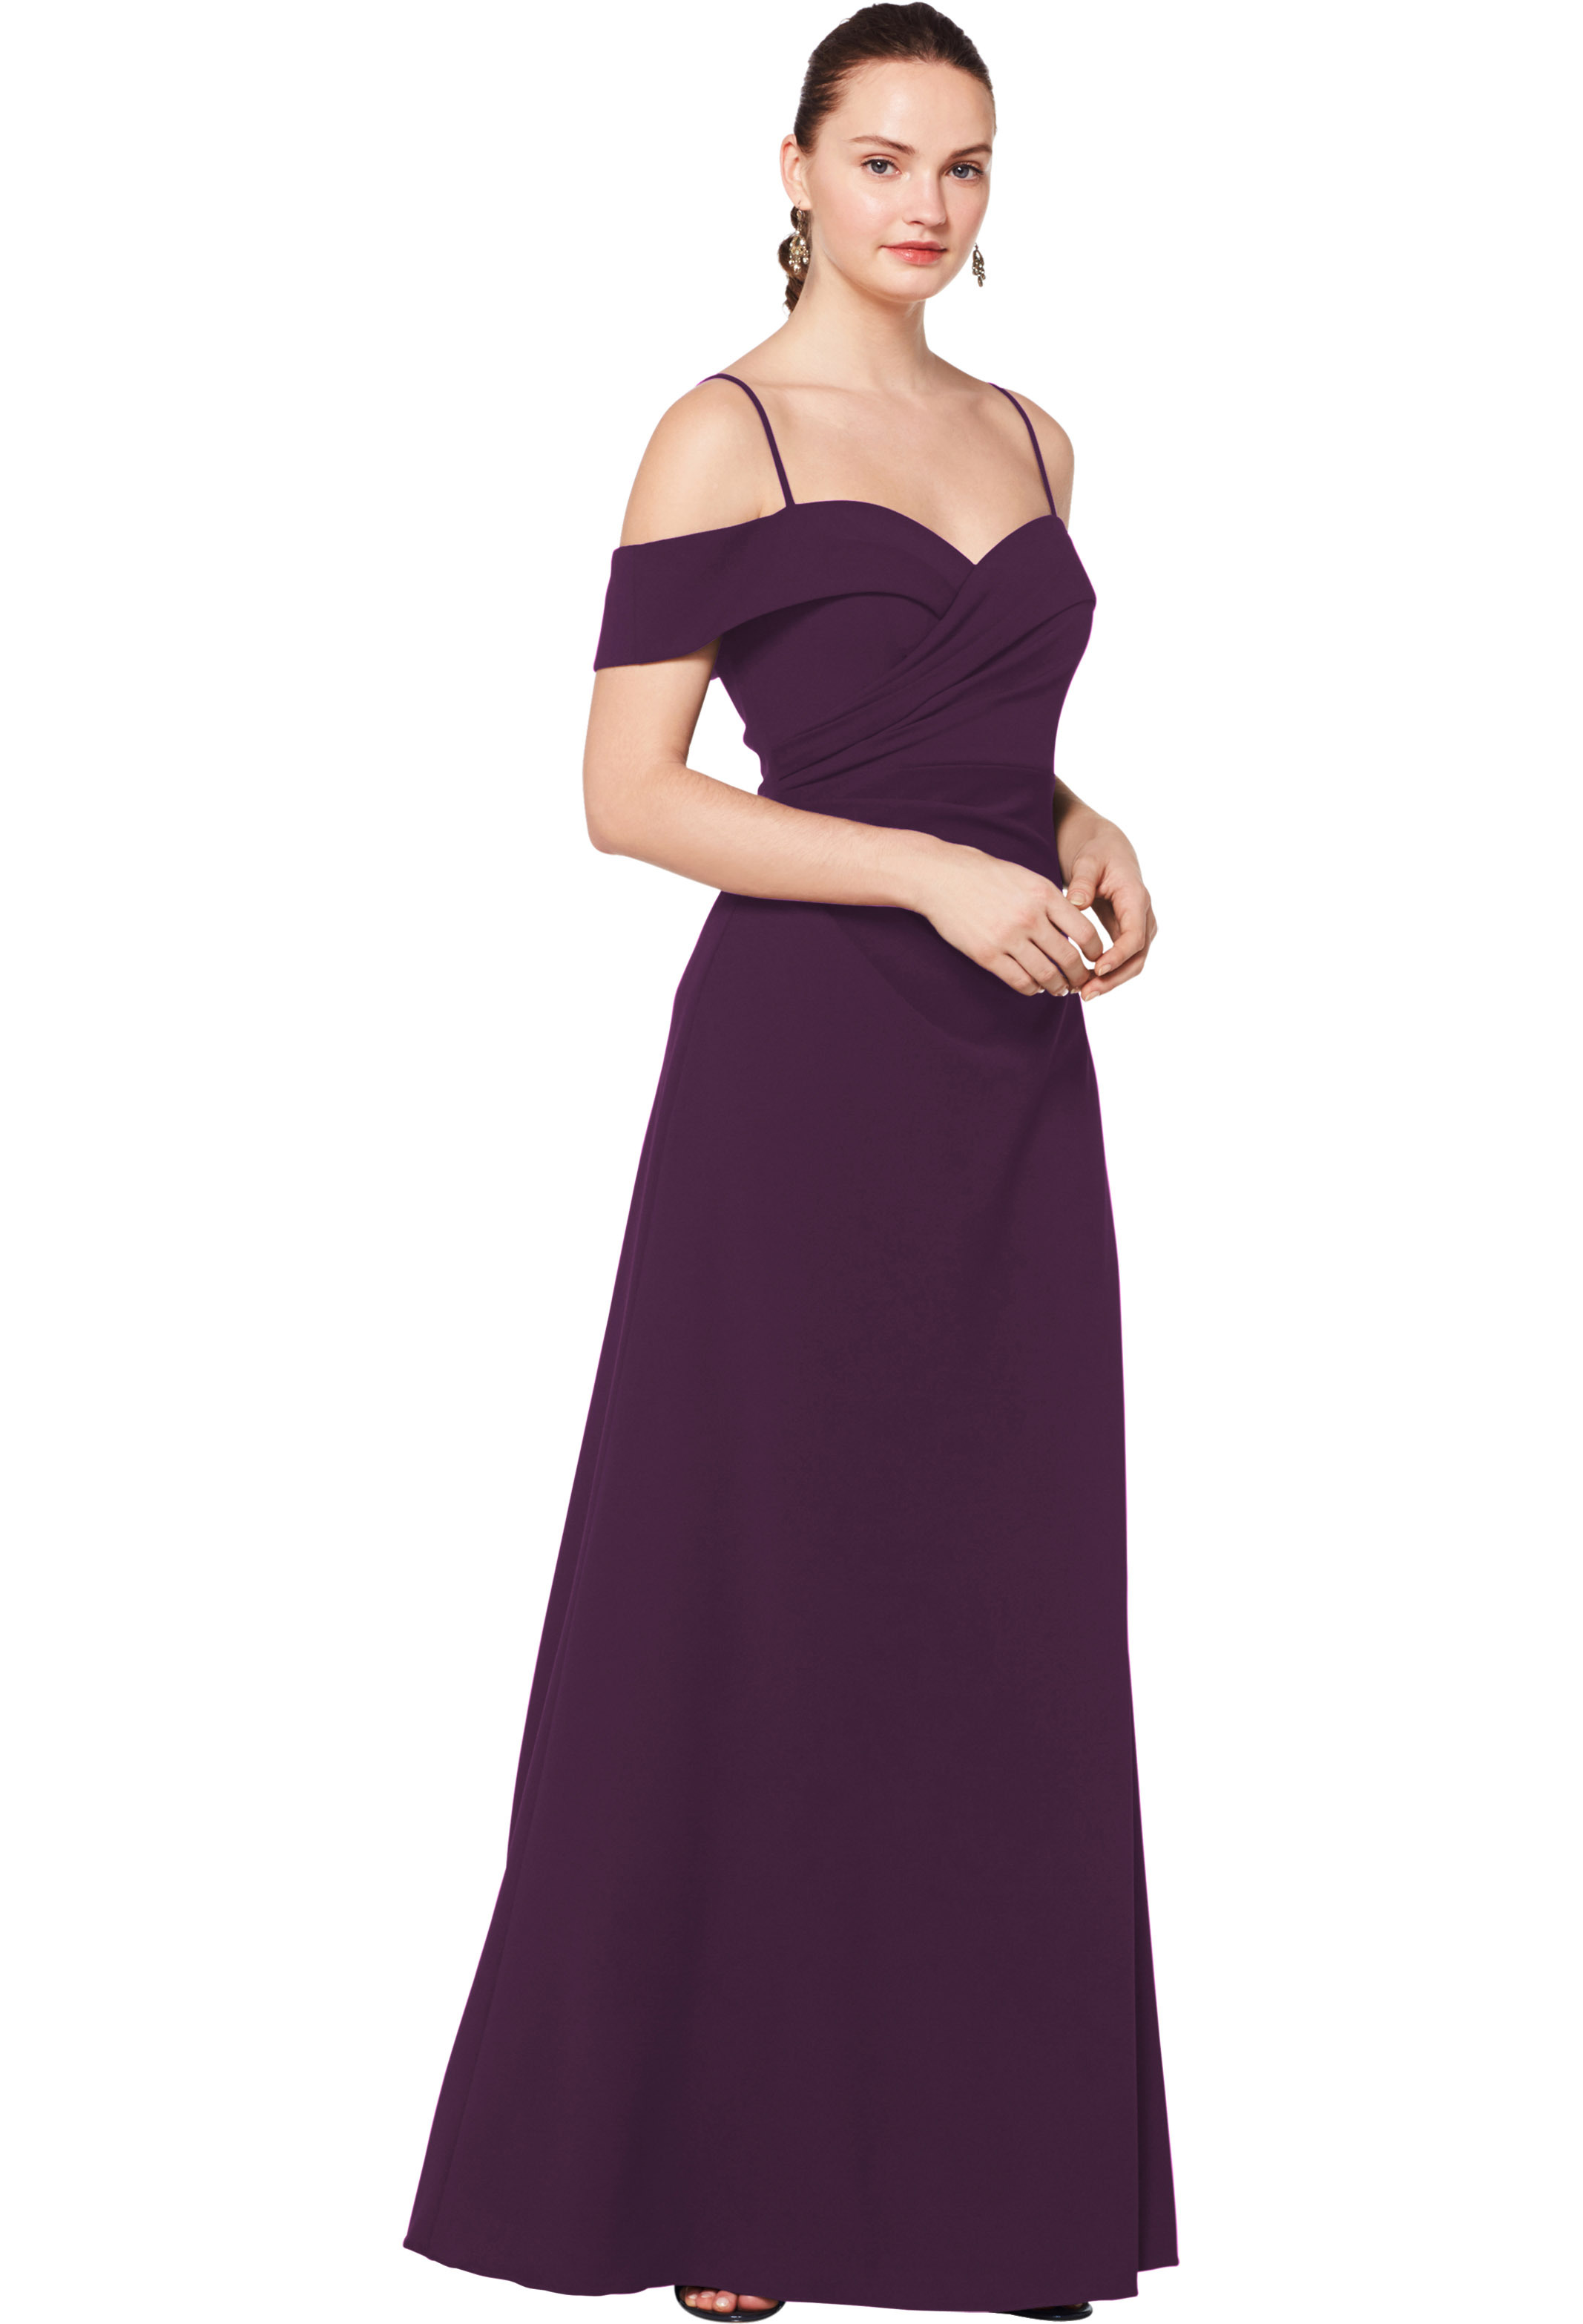 Bill Levkoff PLUM Stretch Crepe Off The Shoulder A-line gown, $230.00 Front